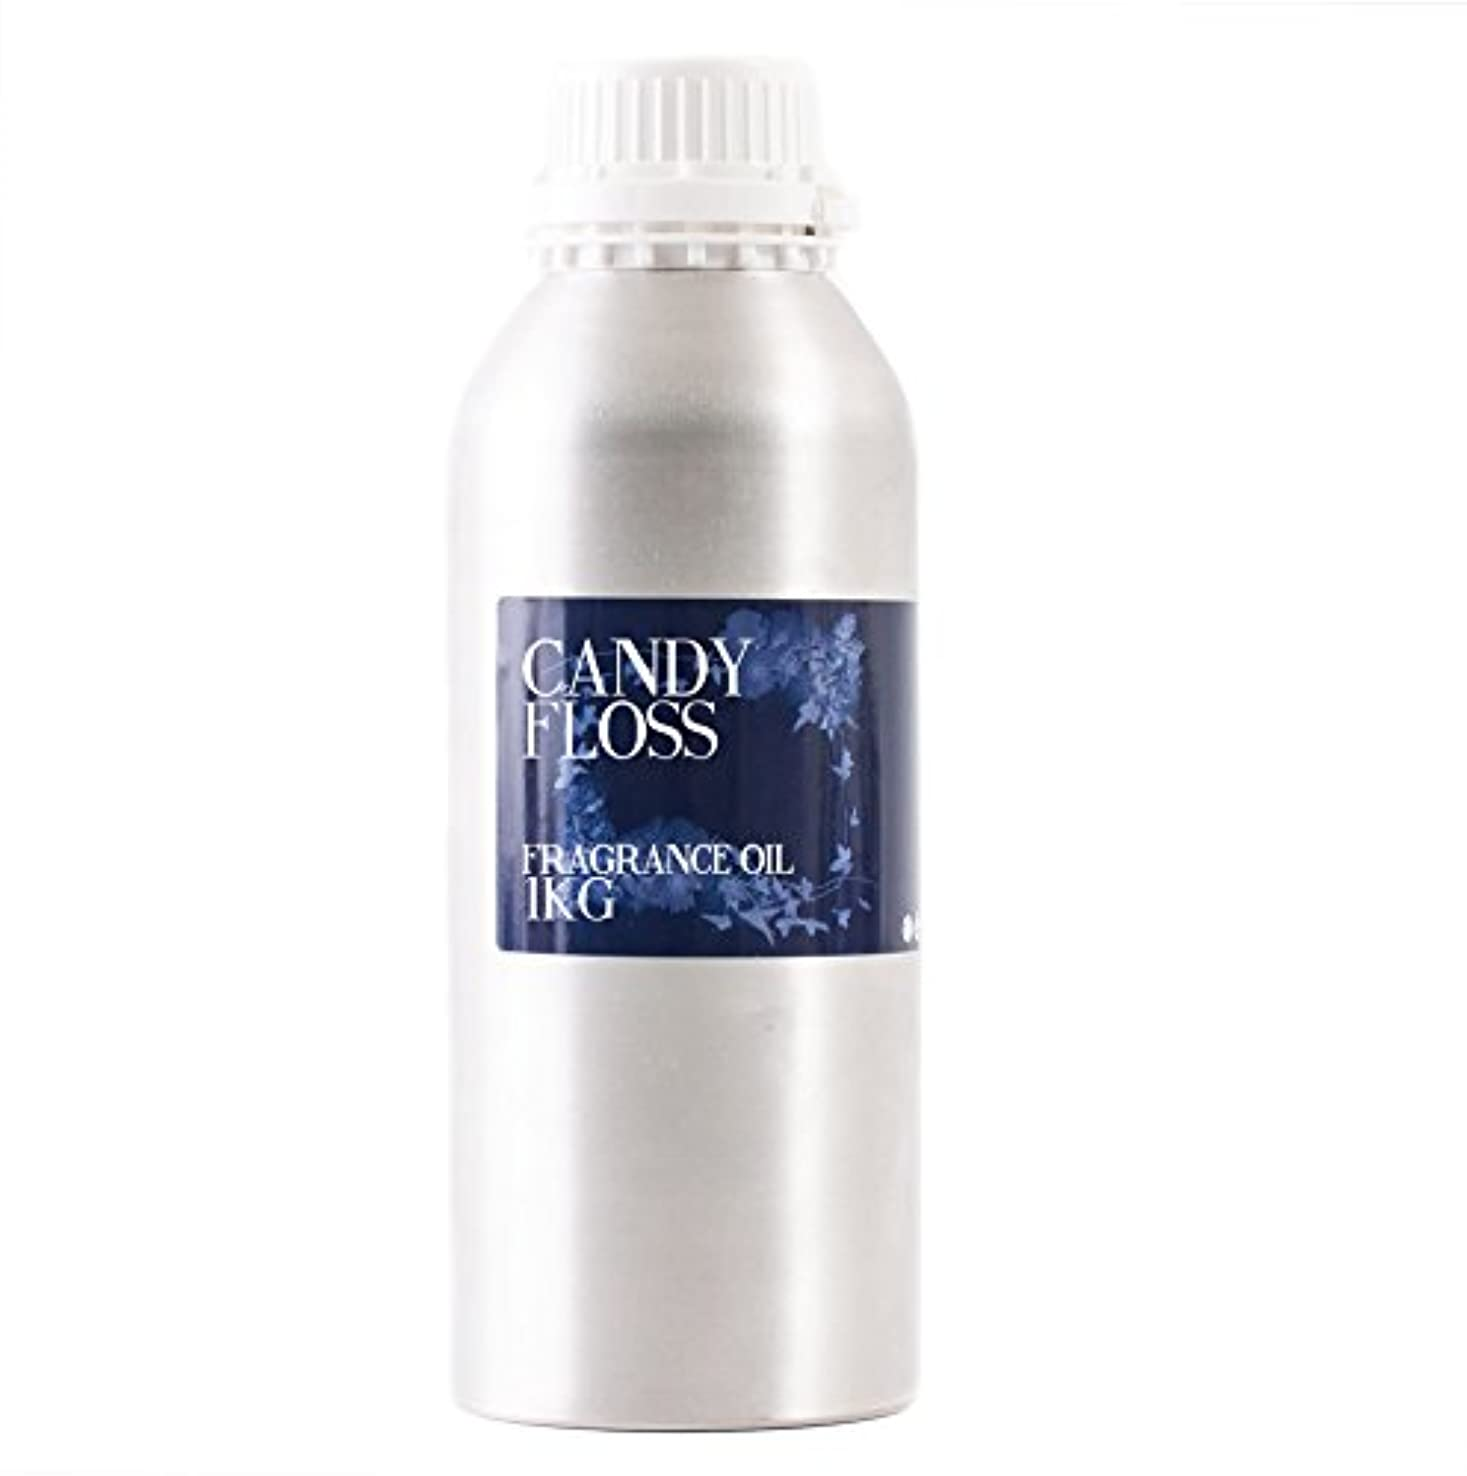 実証するポーチ長いですMystic Moments | Candy Floss Fragrance Oil - 1Kg